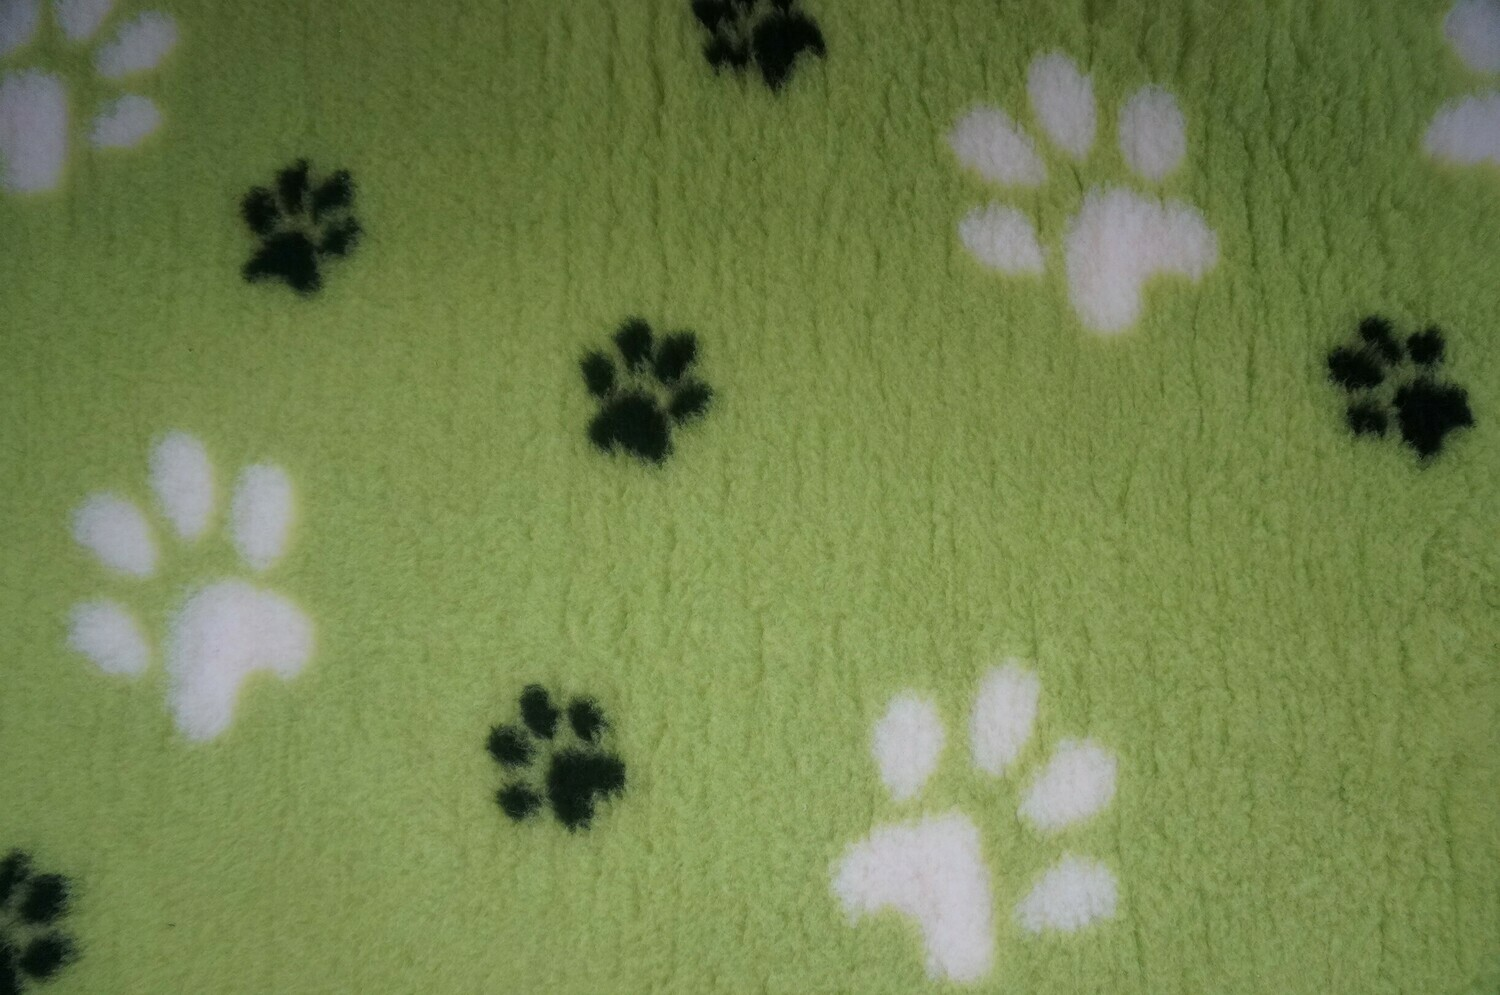 {15 x Metre Roll} : Ultra Premium - Non Slip Backing :  Big Paw : Lime Green with Large White and Smaller Black Paws - Ref : (6496)